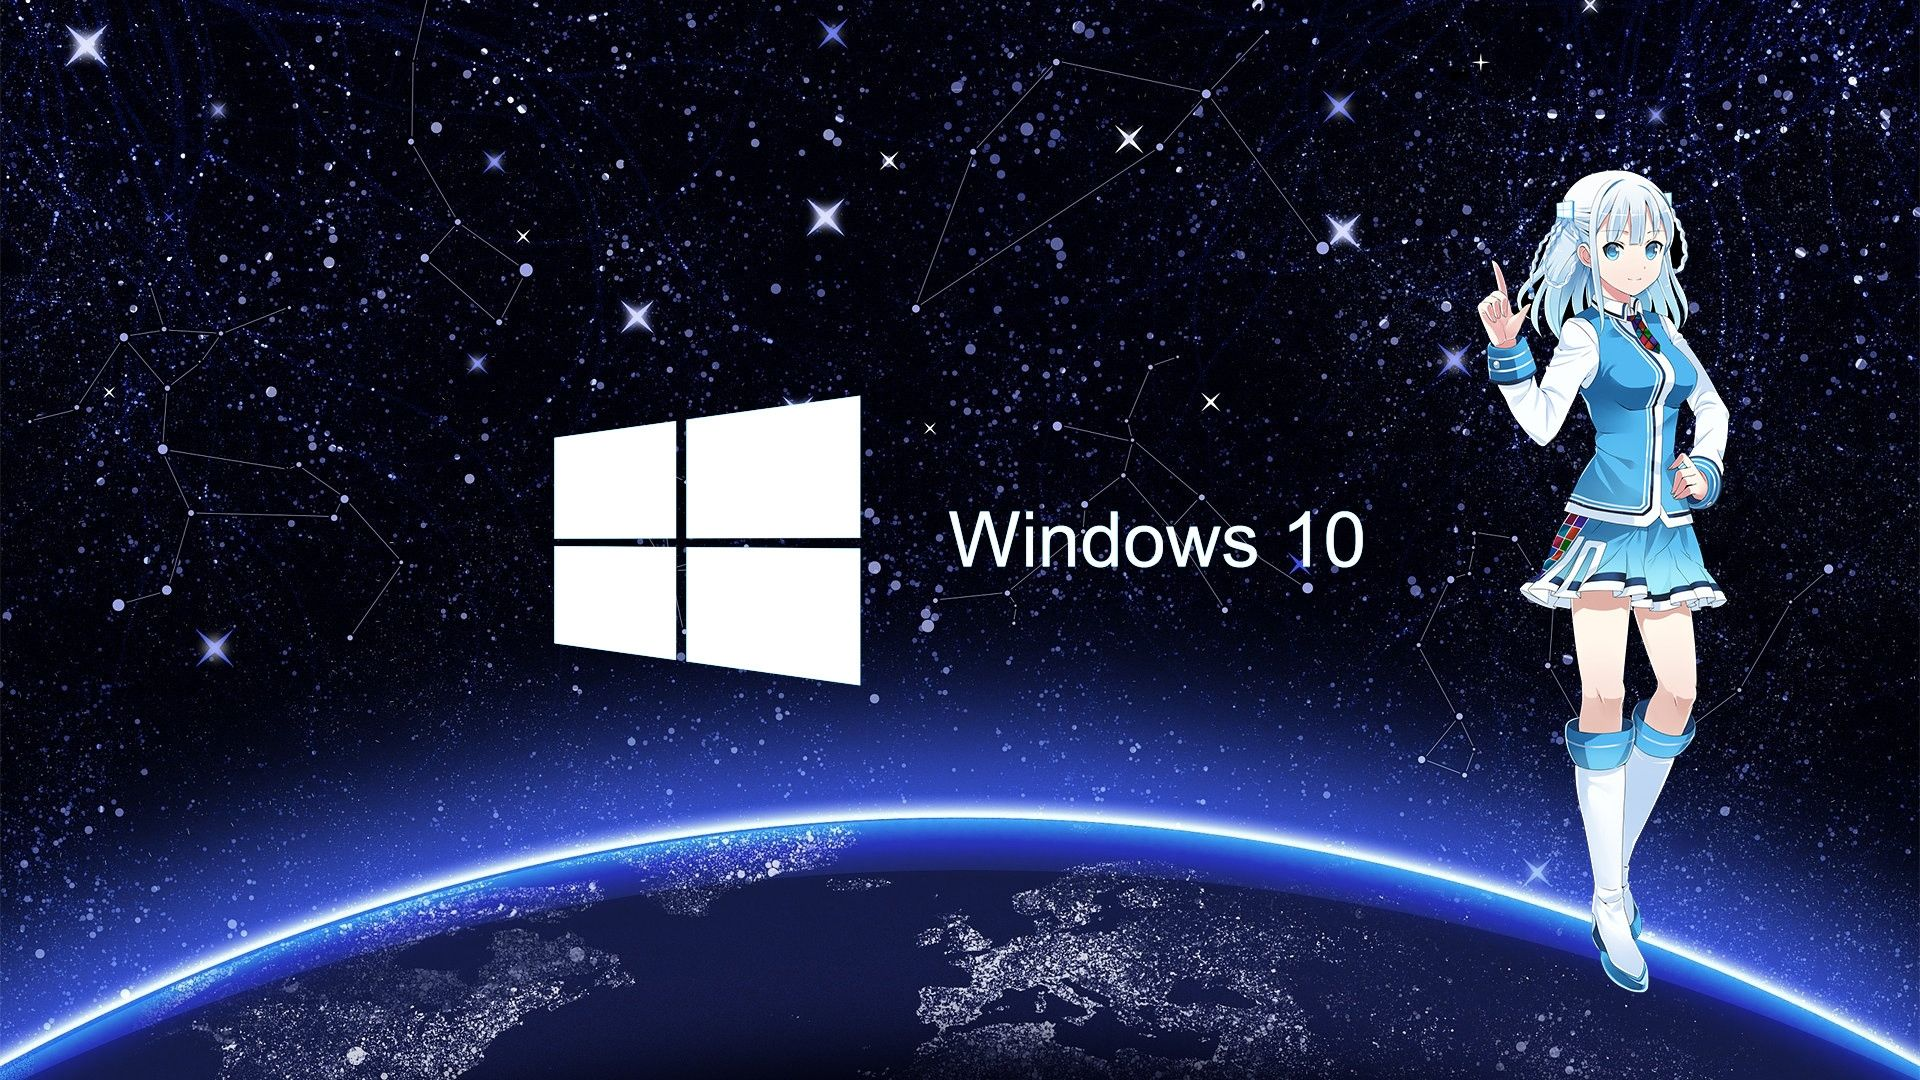 Windows 10 Background Theme Vinnyoleo Vegetalinfo